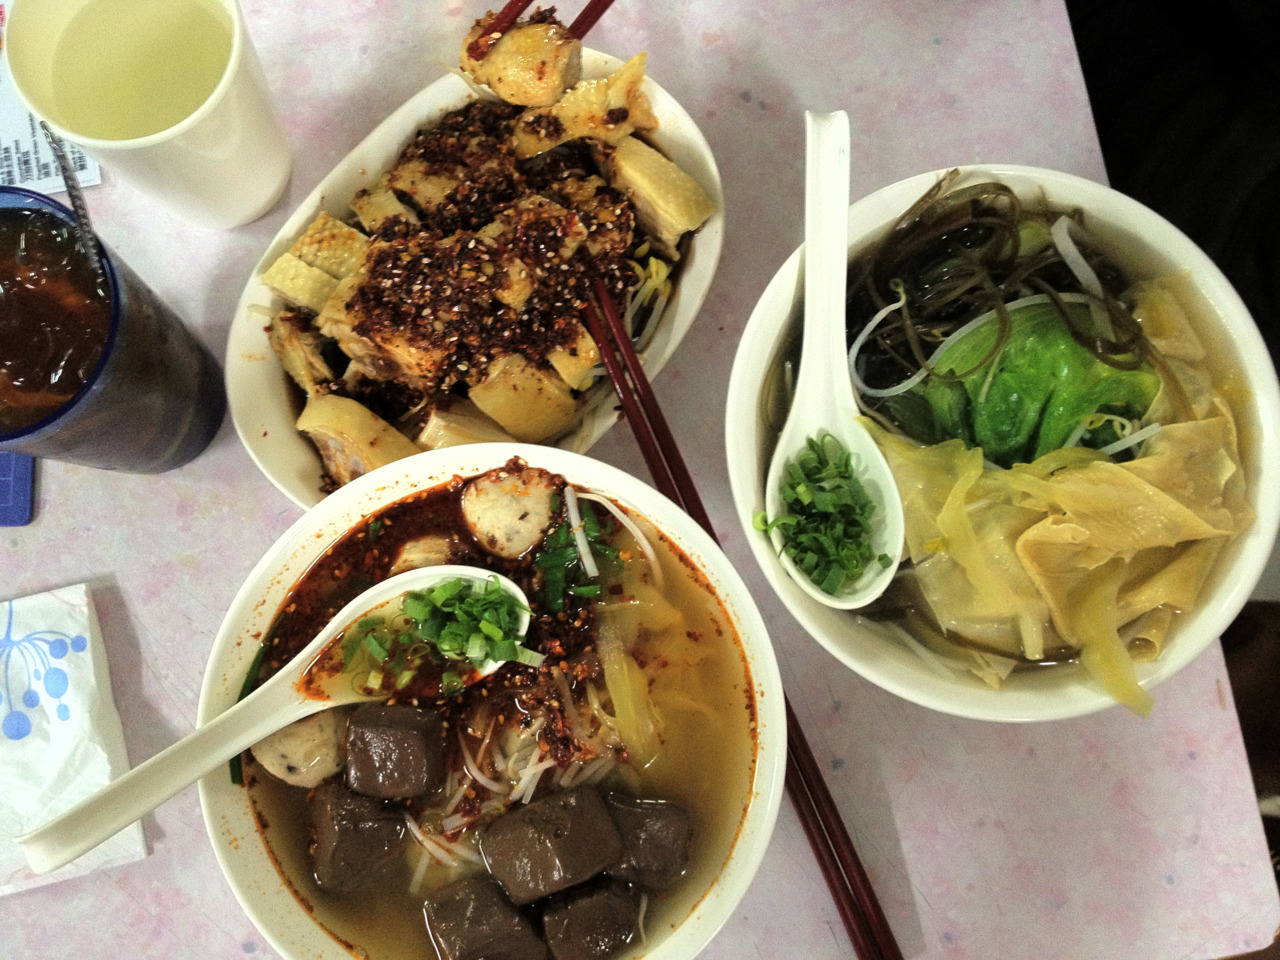 One of my favorite things about Hong Kong is all the noodle shops. I ♥ noodle soups.